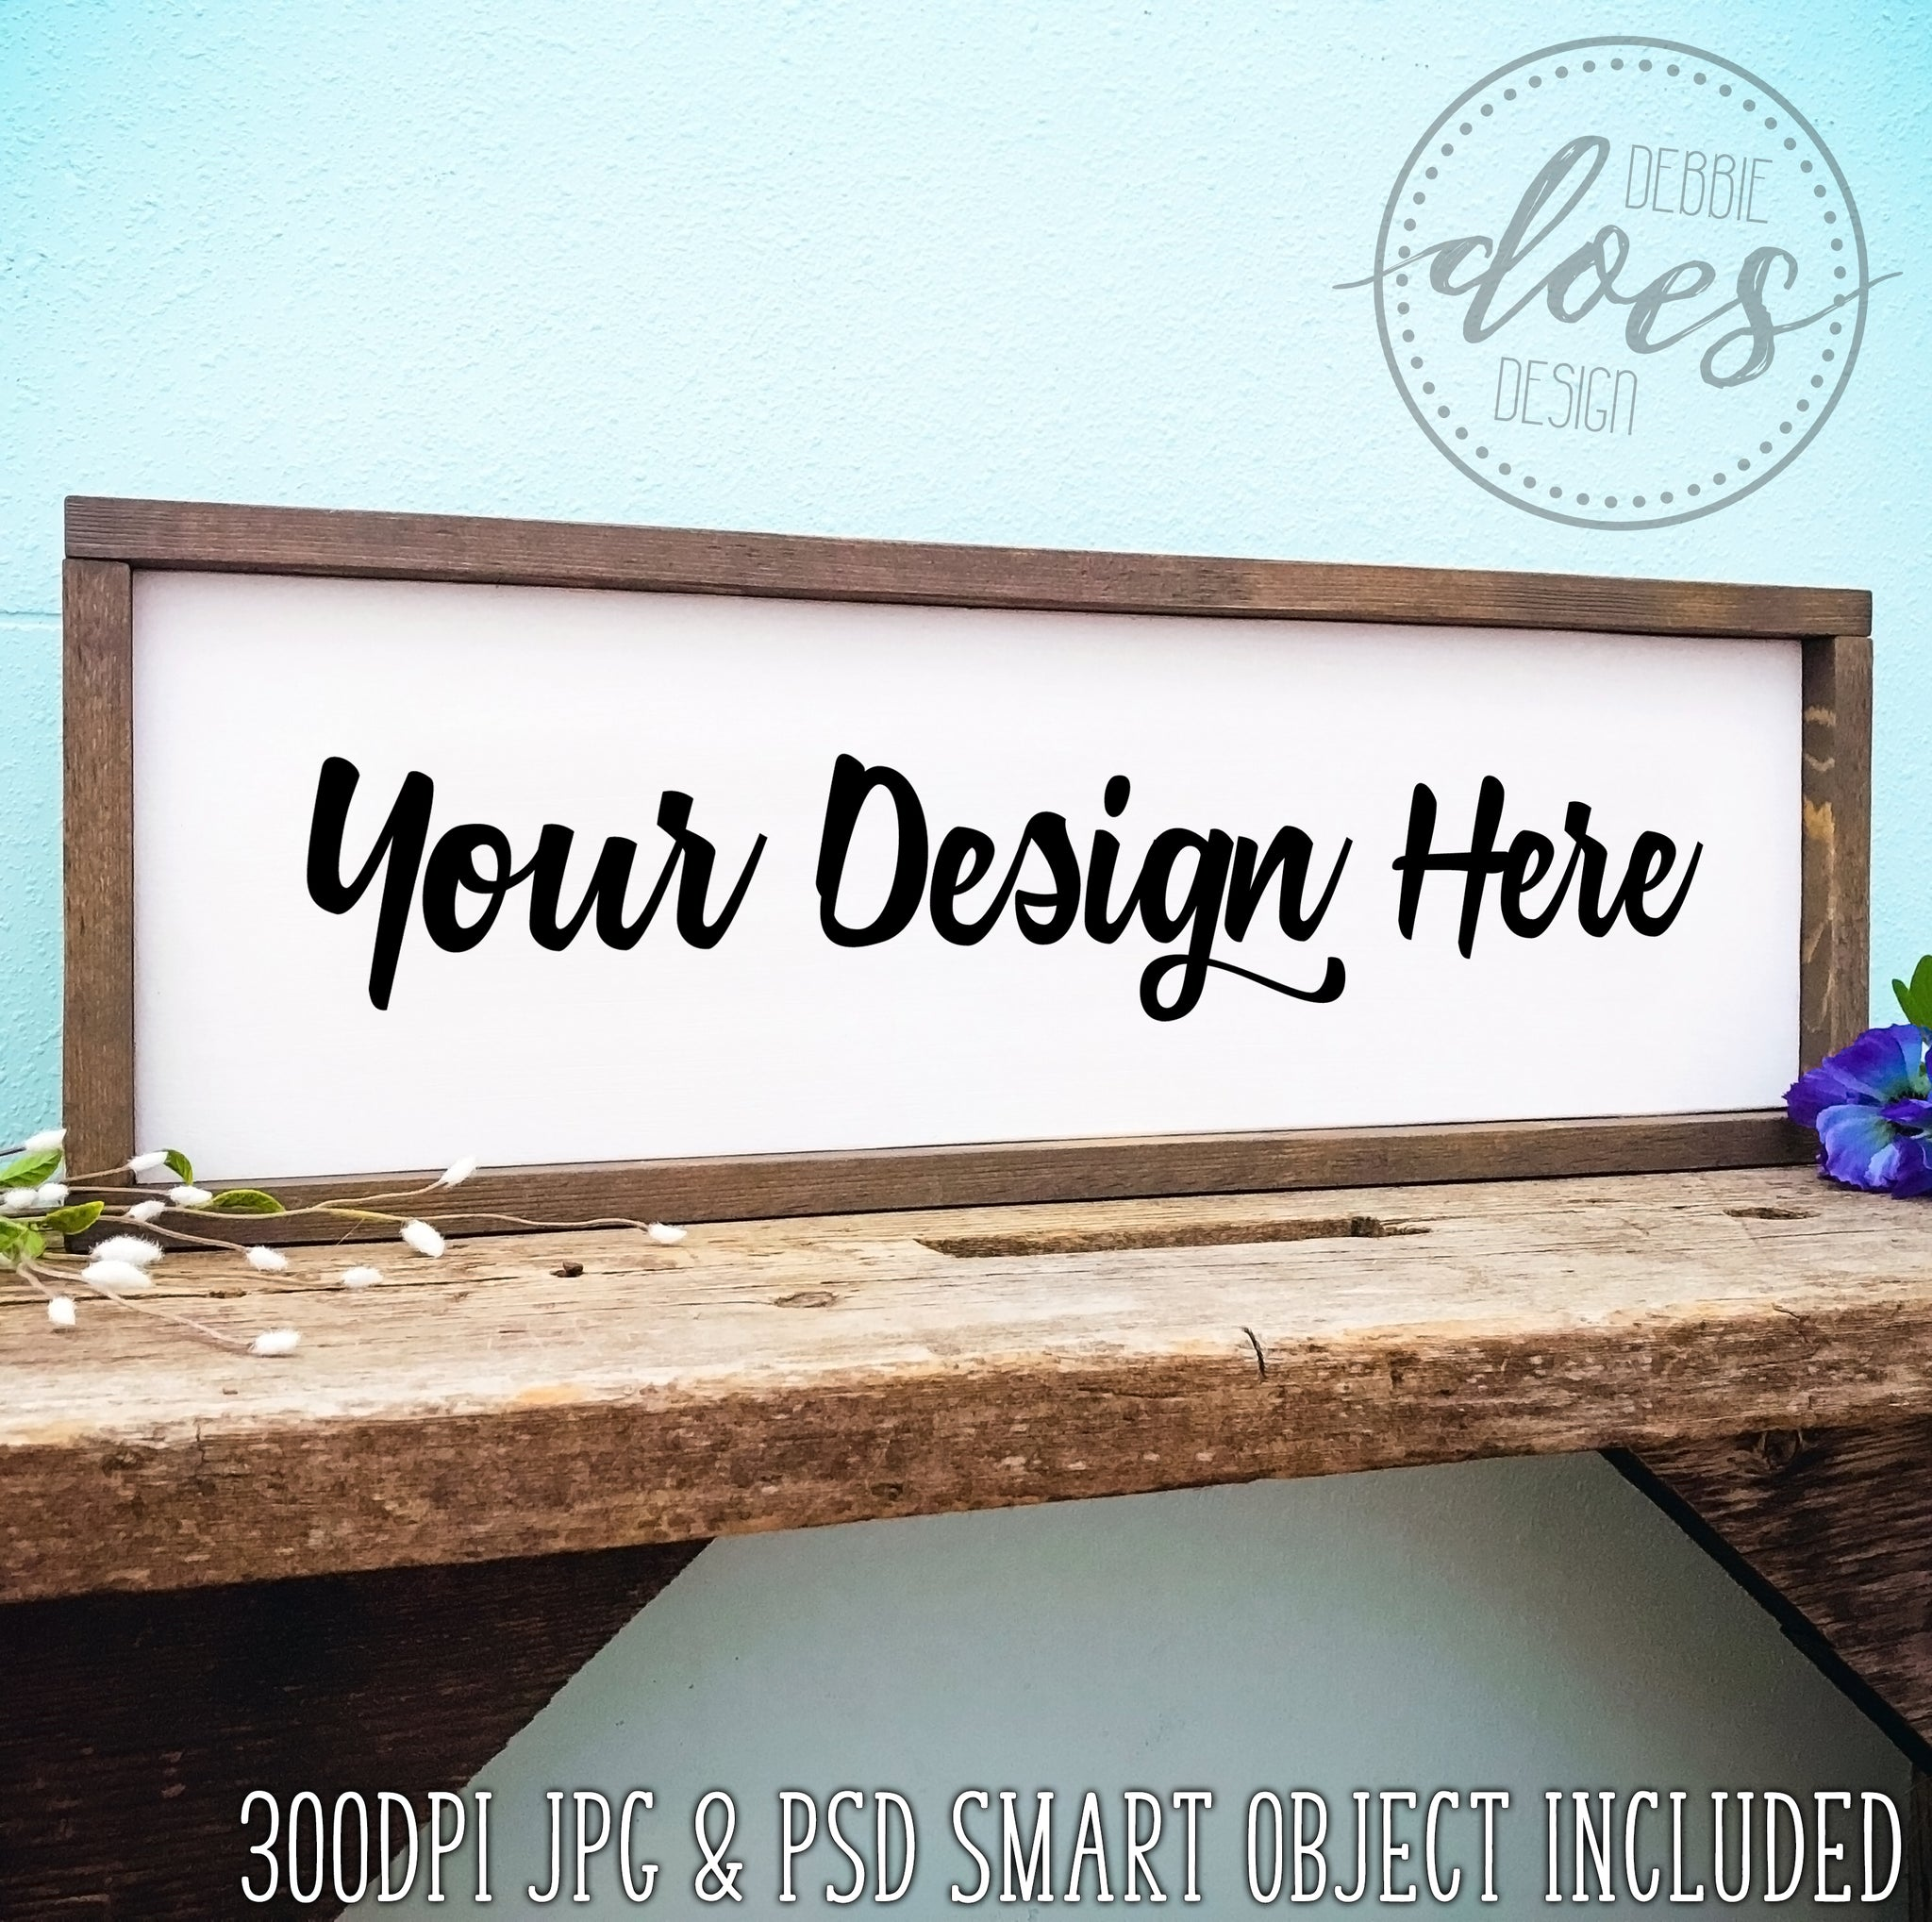 Rectangle Framed Sign Mockup with Smart Object